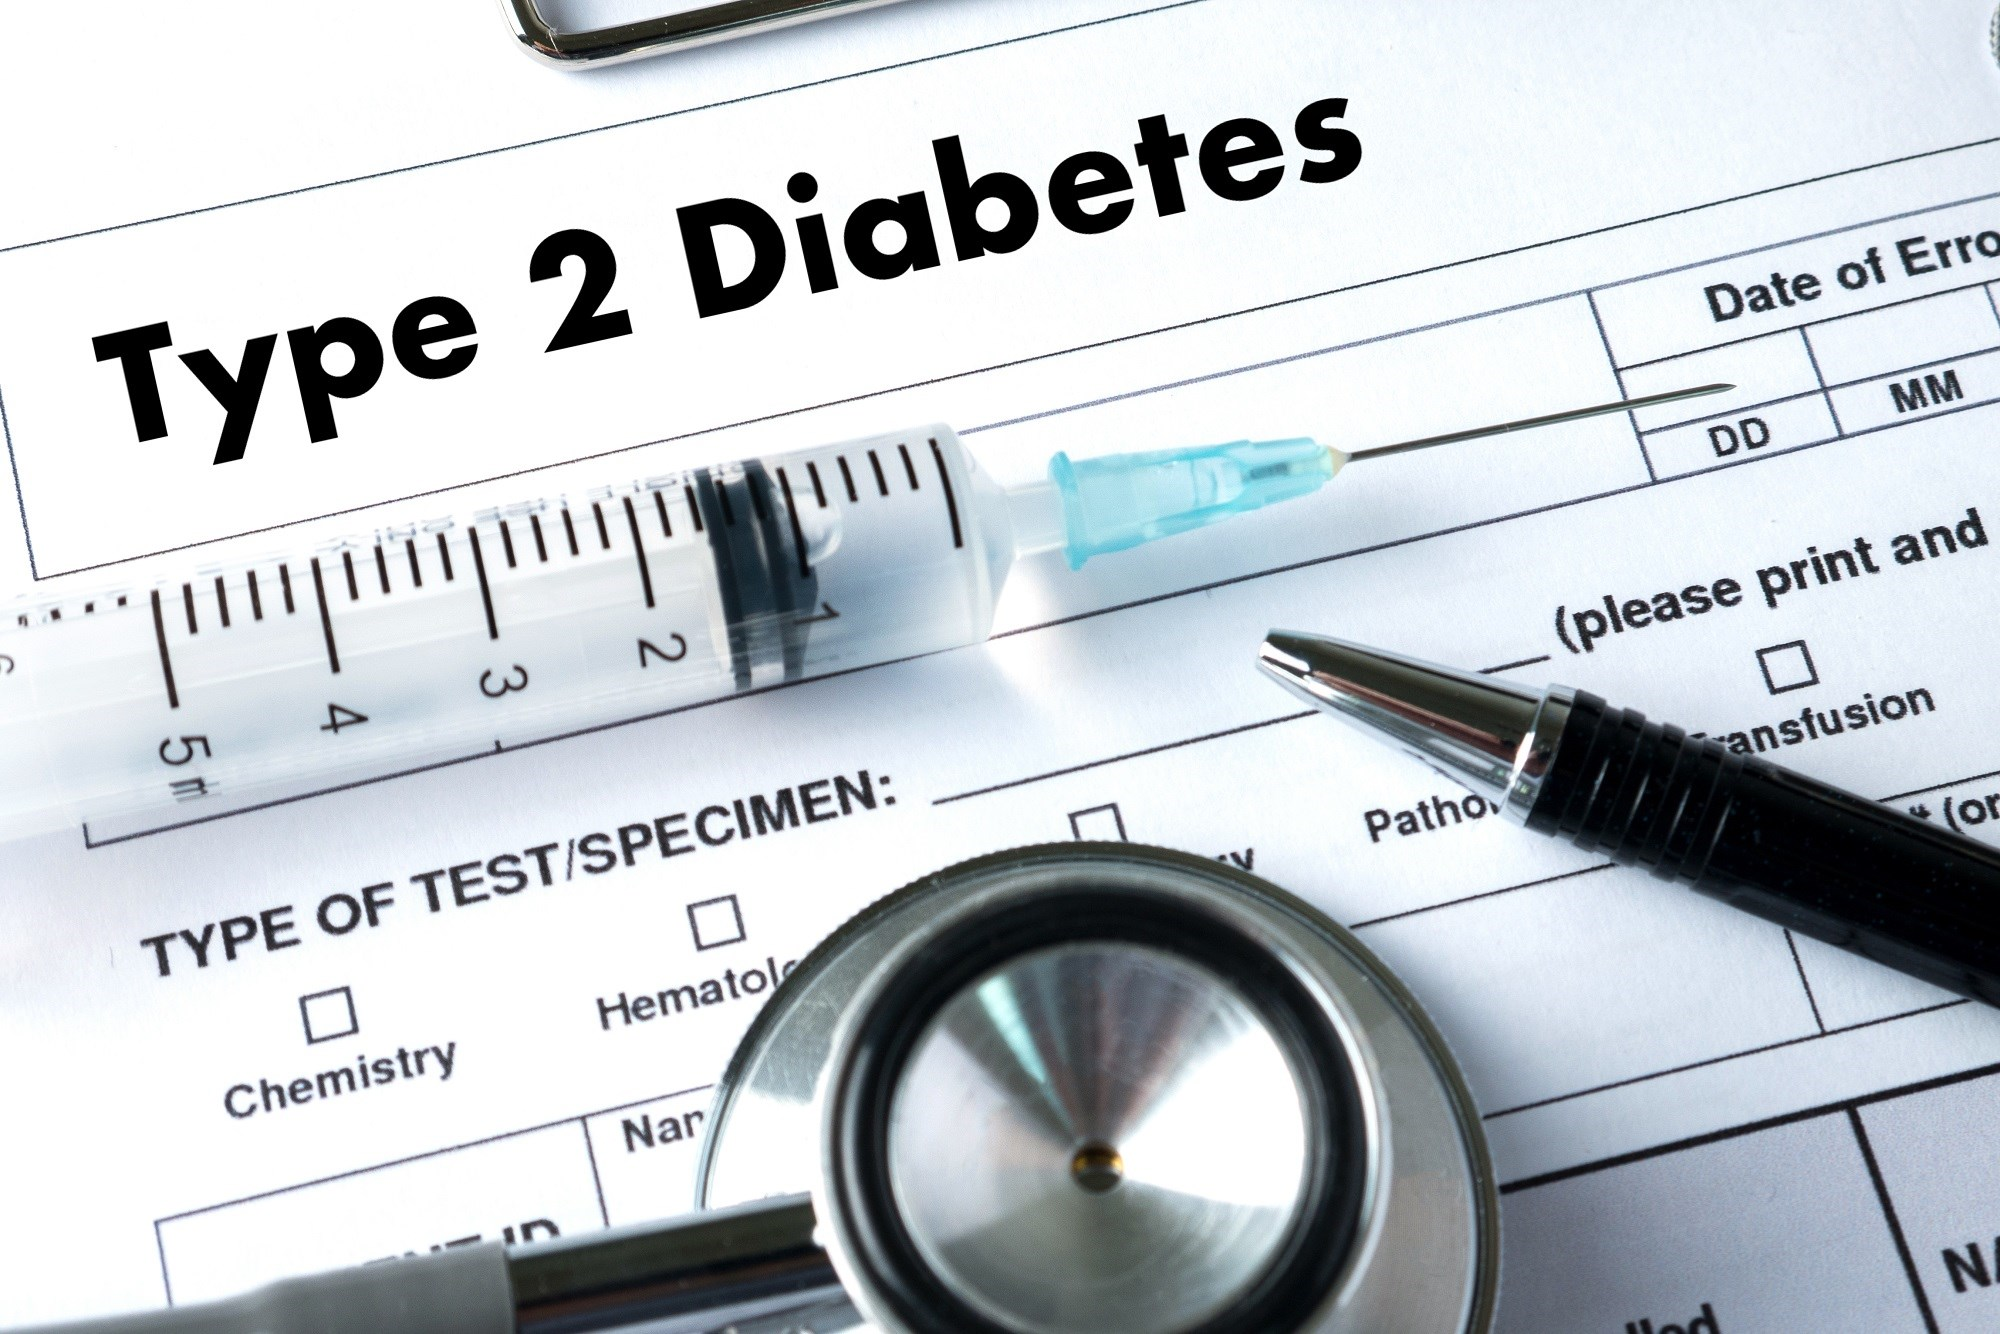 Higher Aldosterone Levels Tied to Incident Type 2 Diabetes Risk